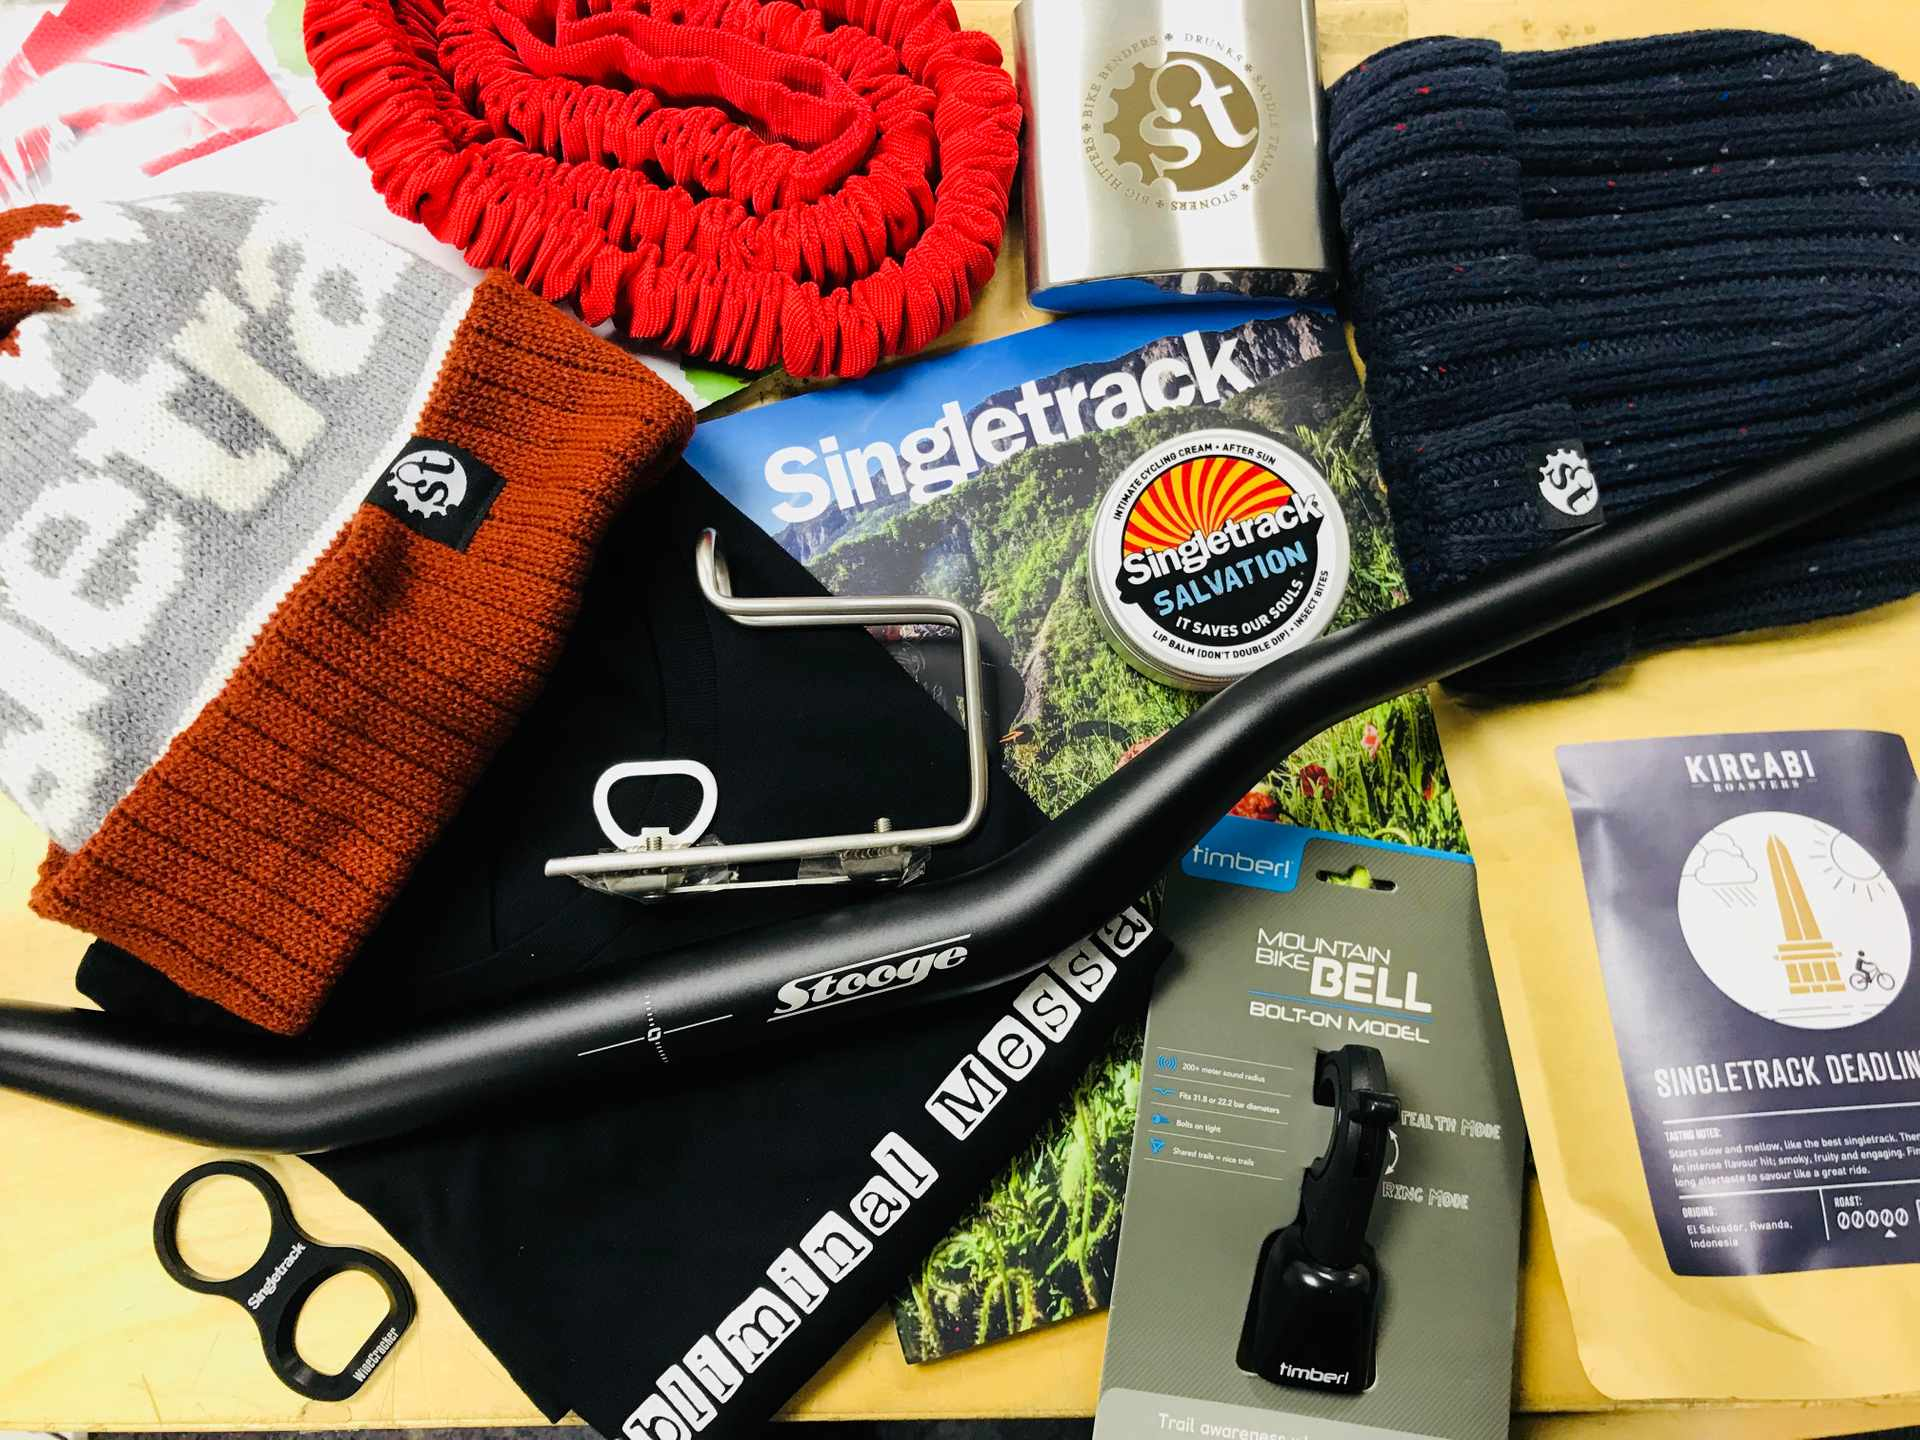 singletrack merch shop gifts for mountain bikers membership